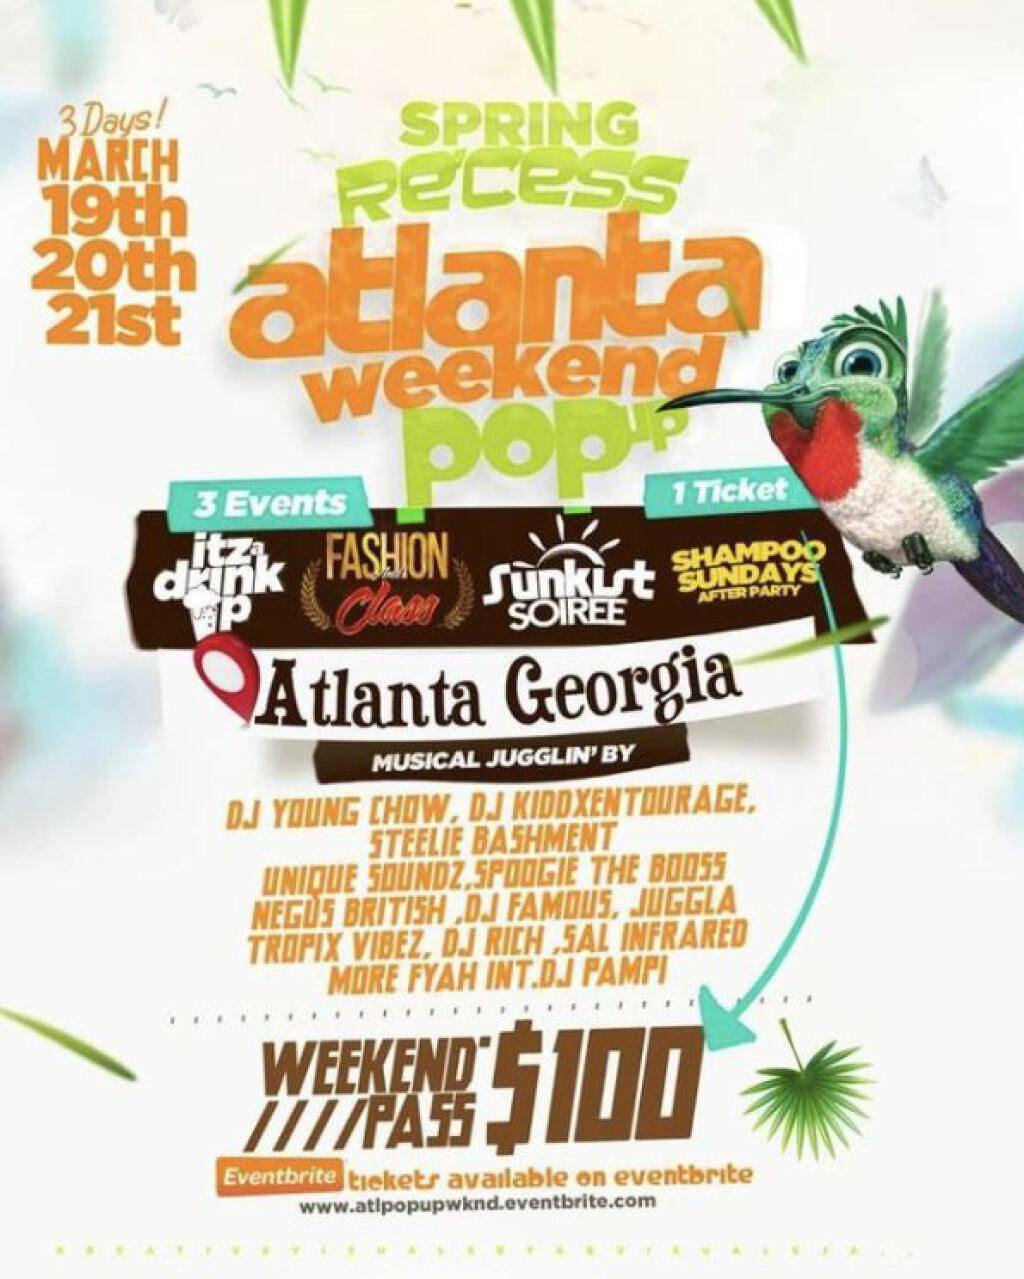 Spring Recess Atlanta Pop up Weekend- Day 2 flyer or graphic.